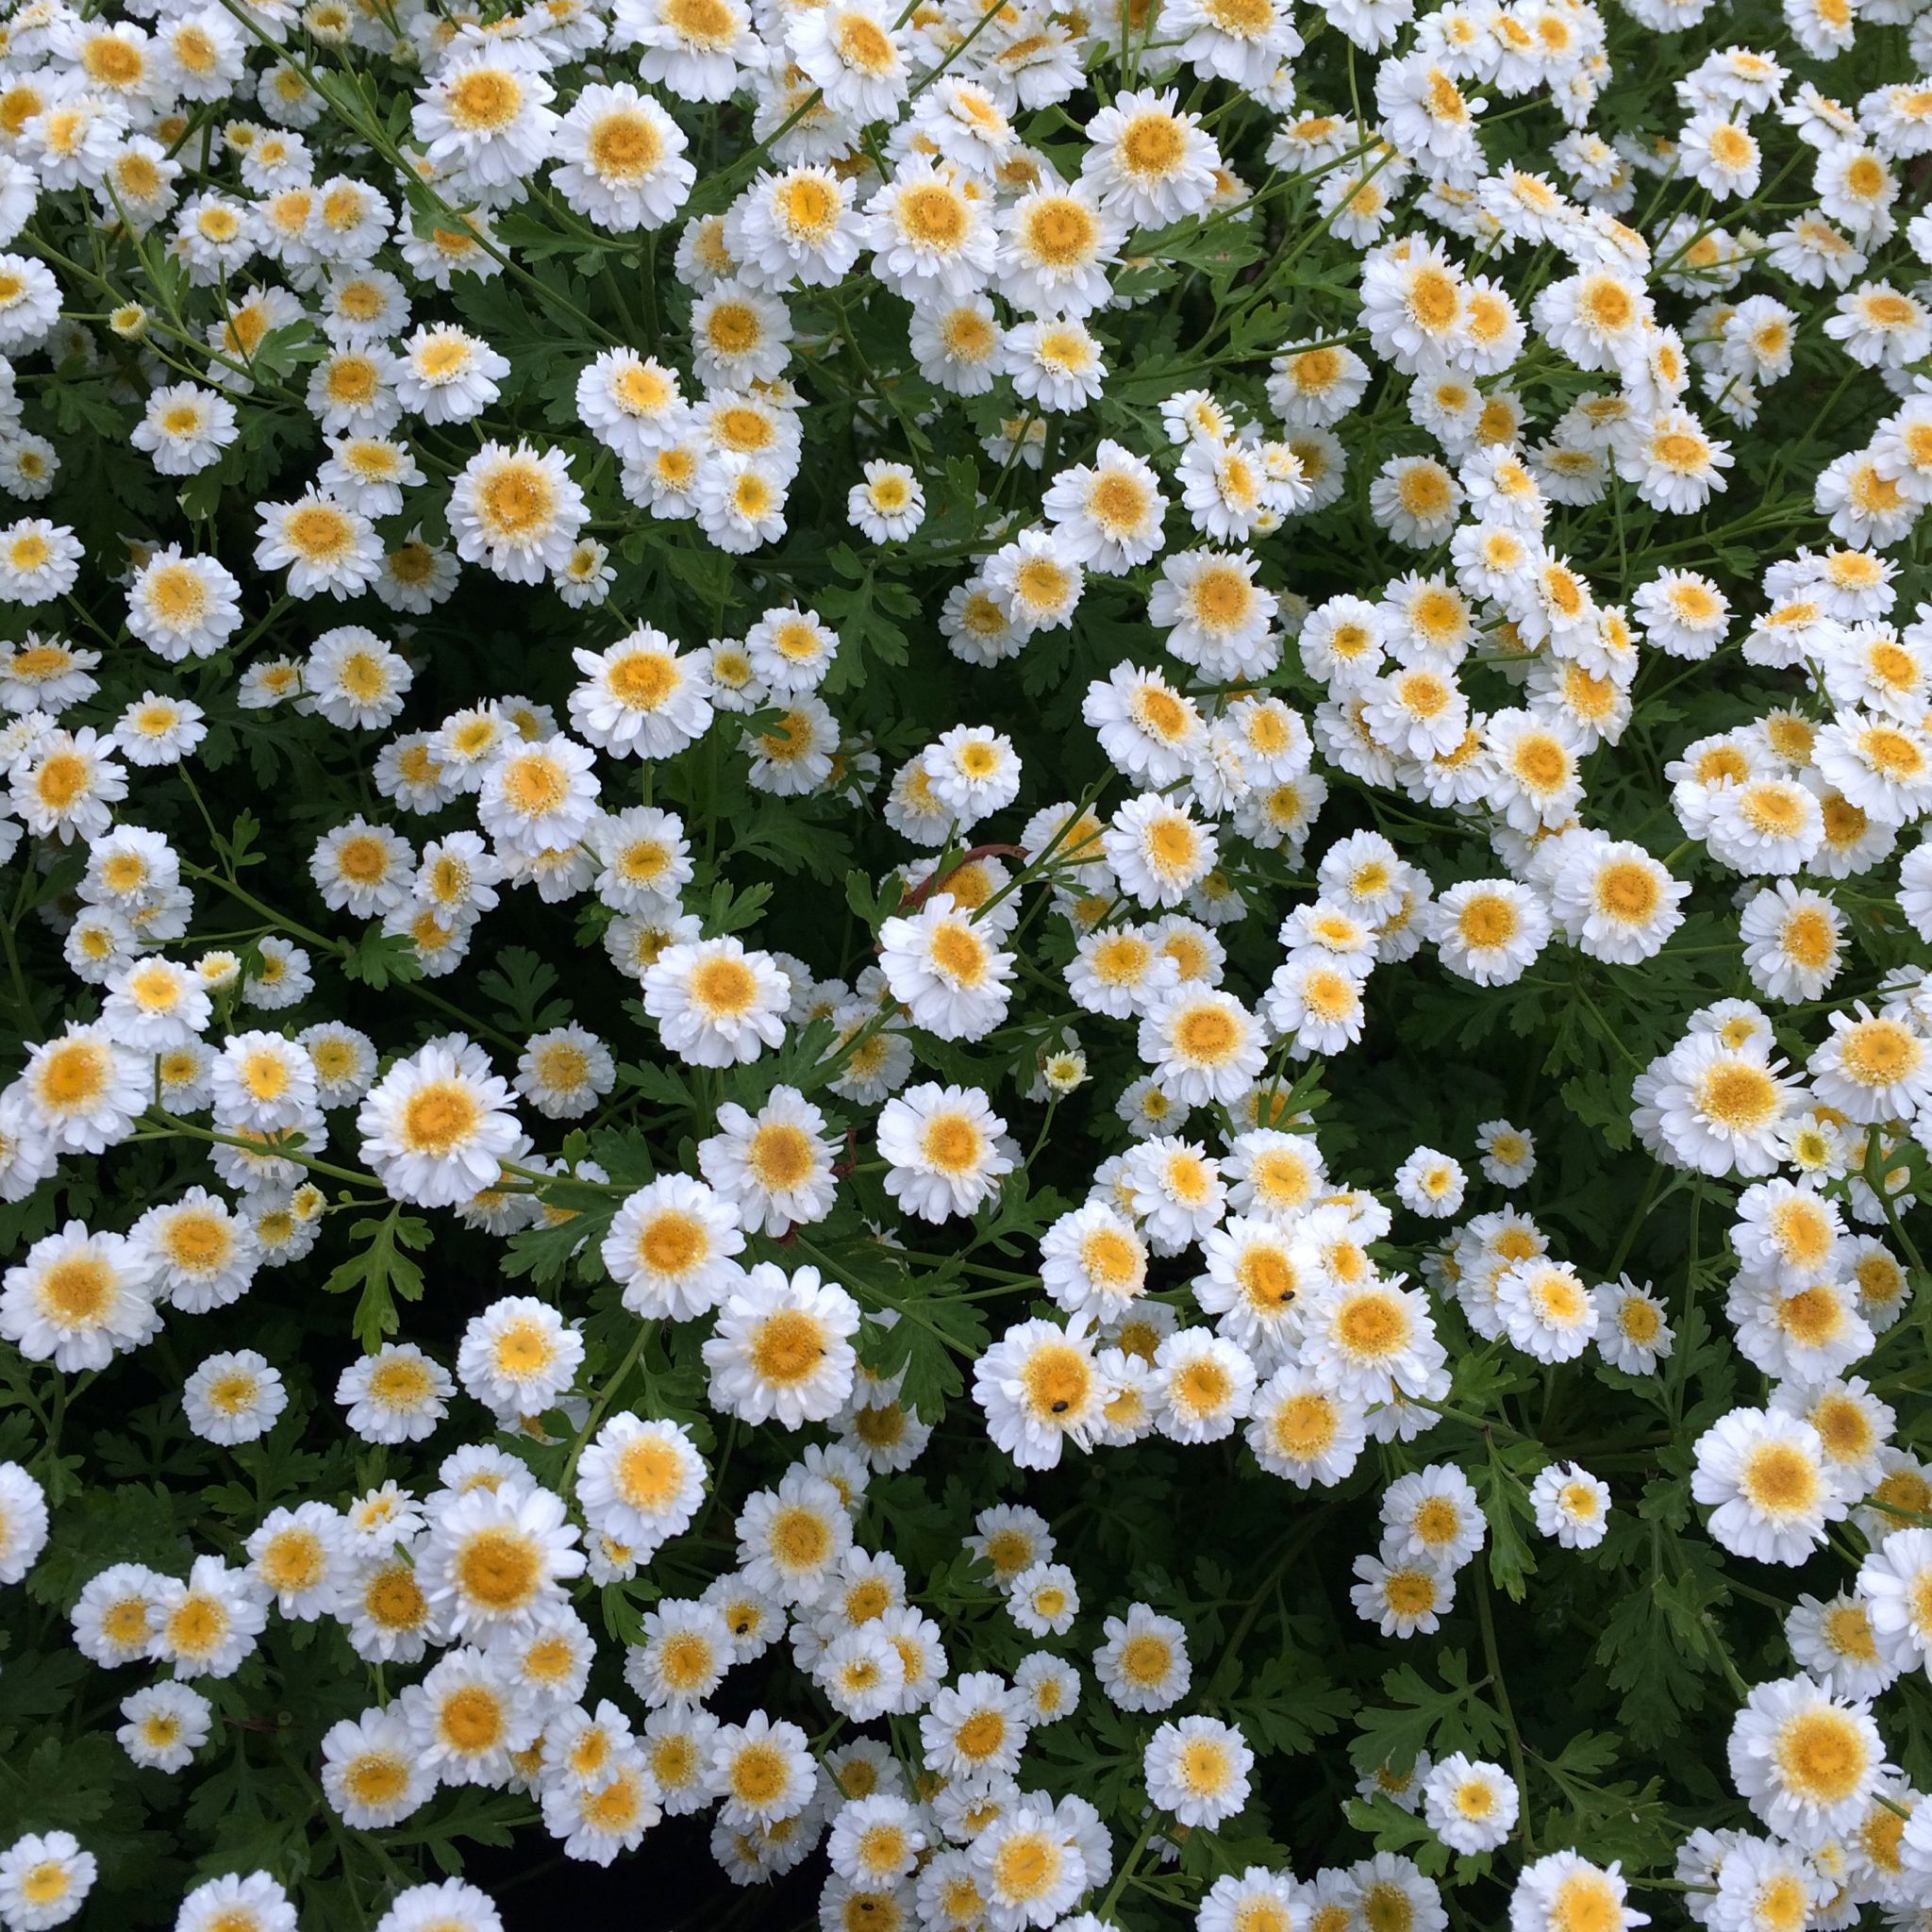 Double feverfew a classic daisy type flower an example of flowers a classic daisy type flower an example of flowers in bloom in izmirmasajfo